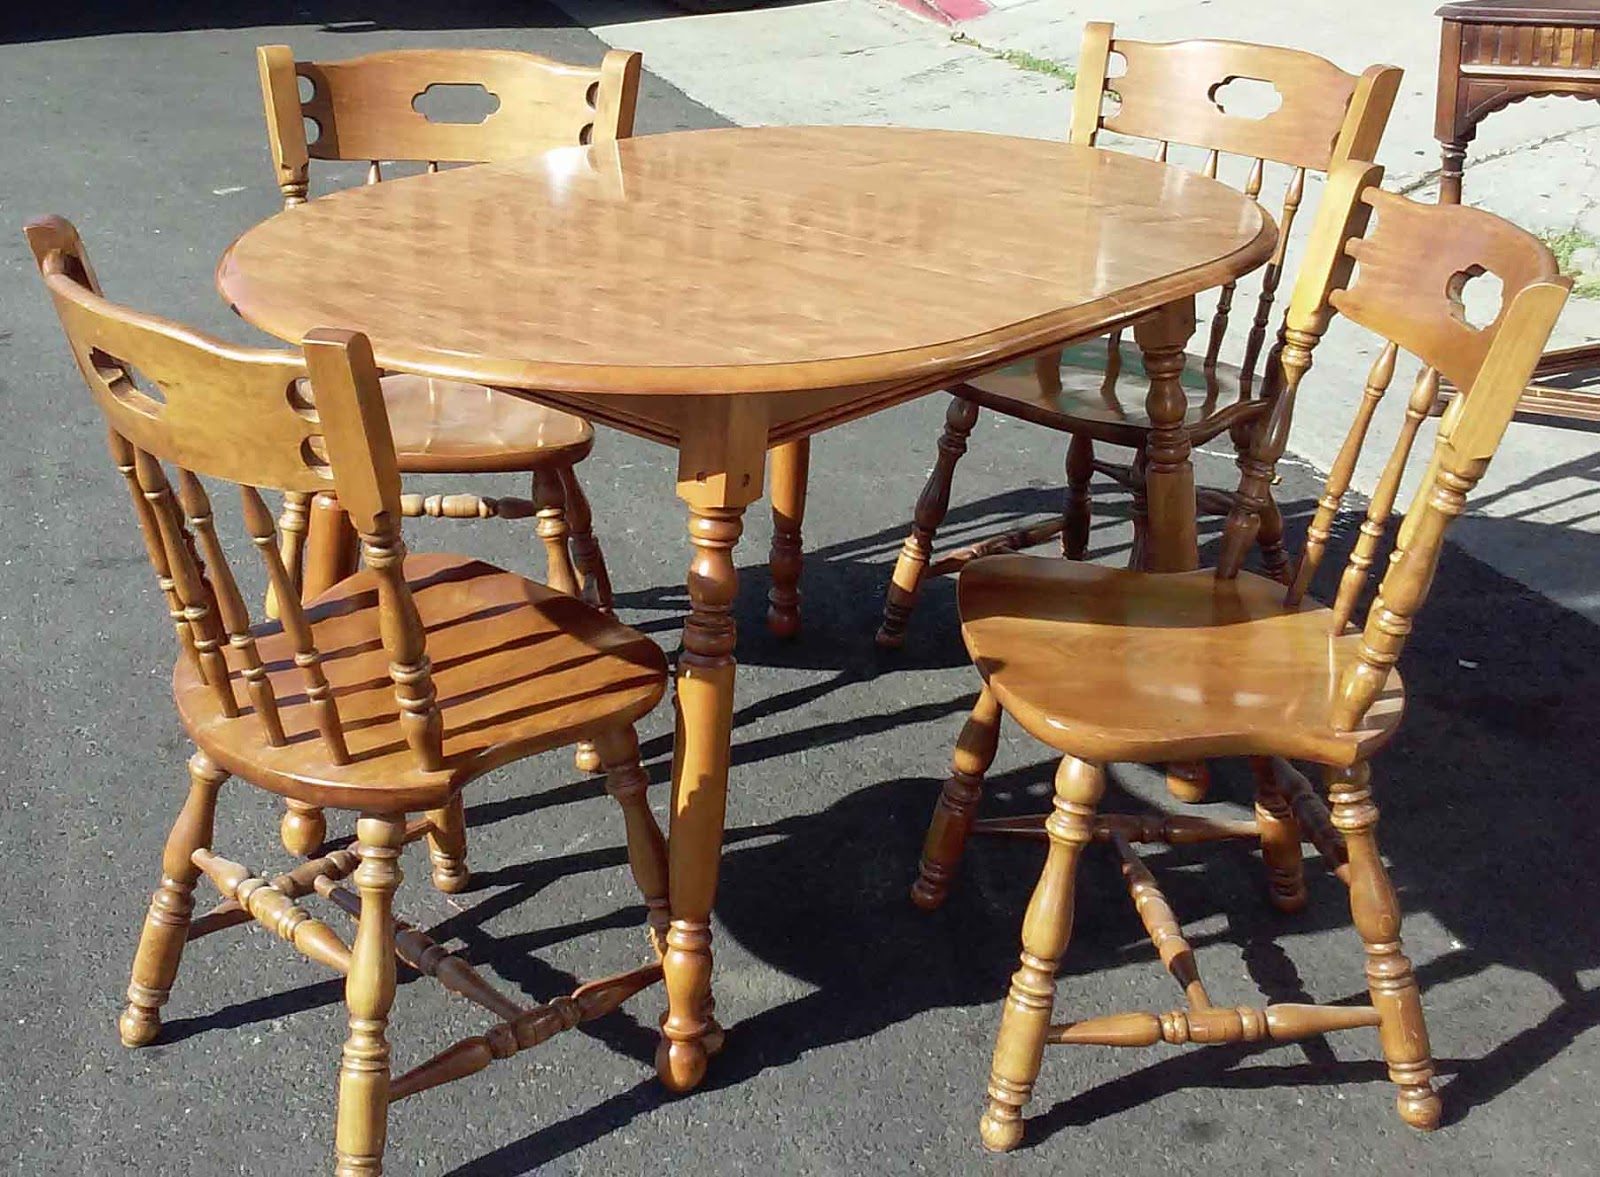 UHURU FURNITURE COLLECTIBLES SOLD Early American Table Set with